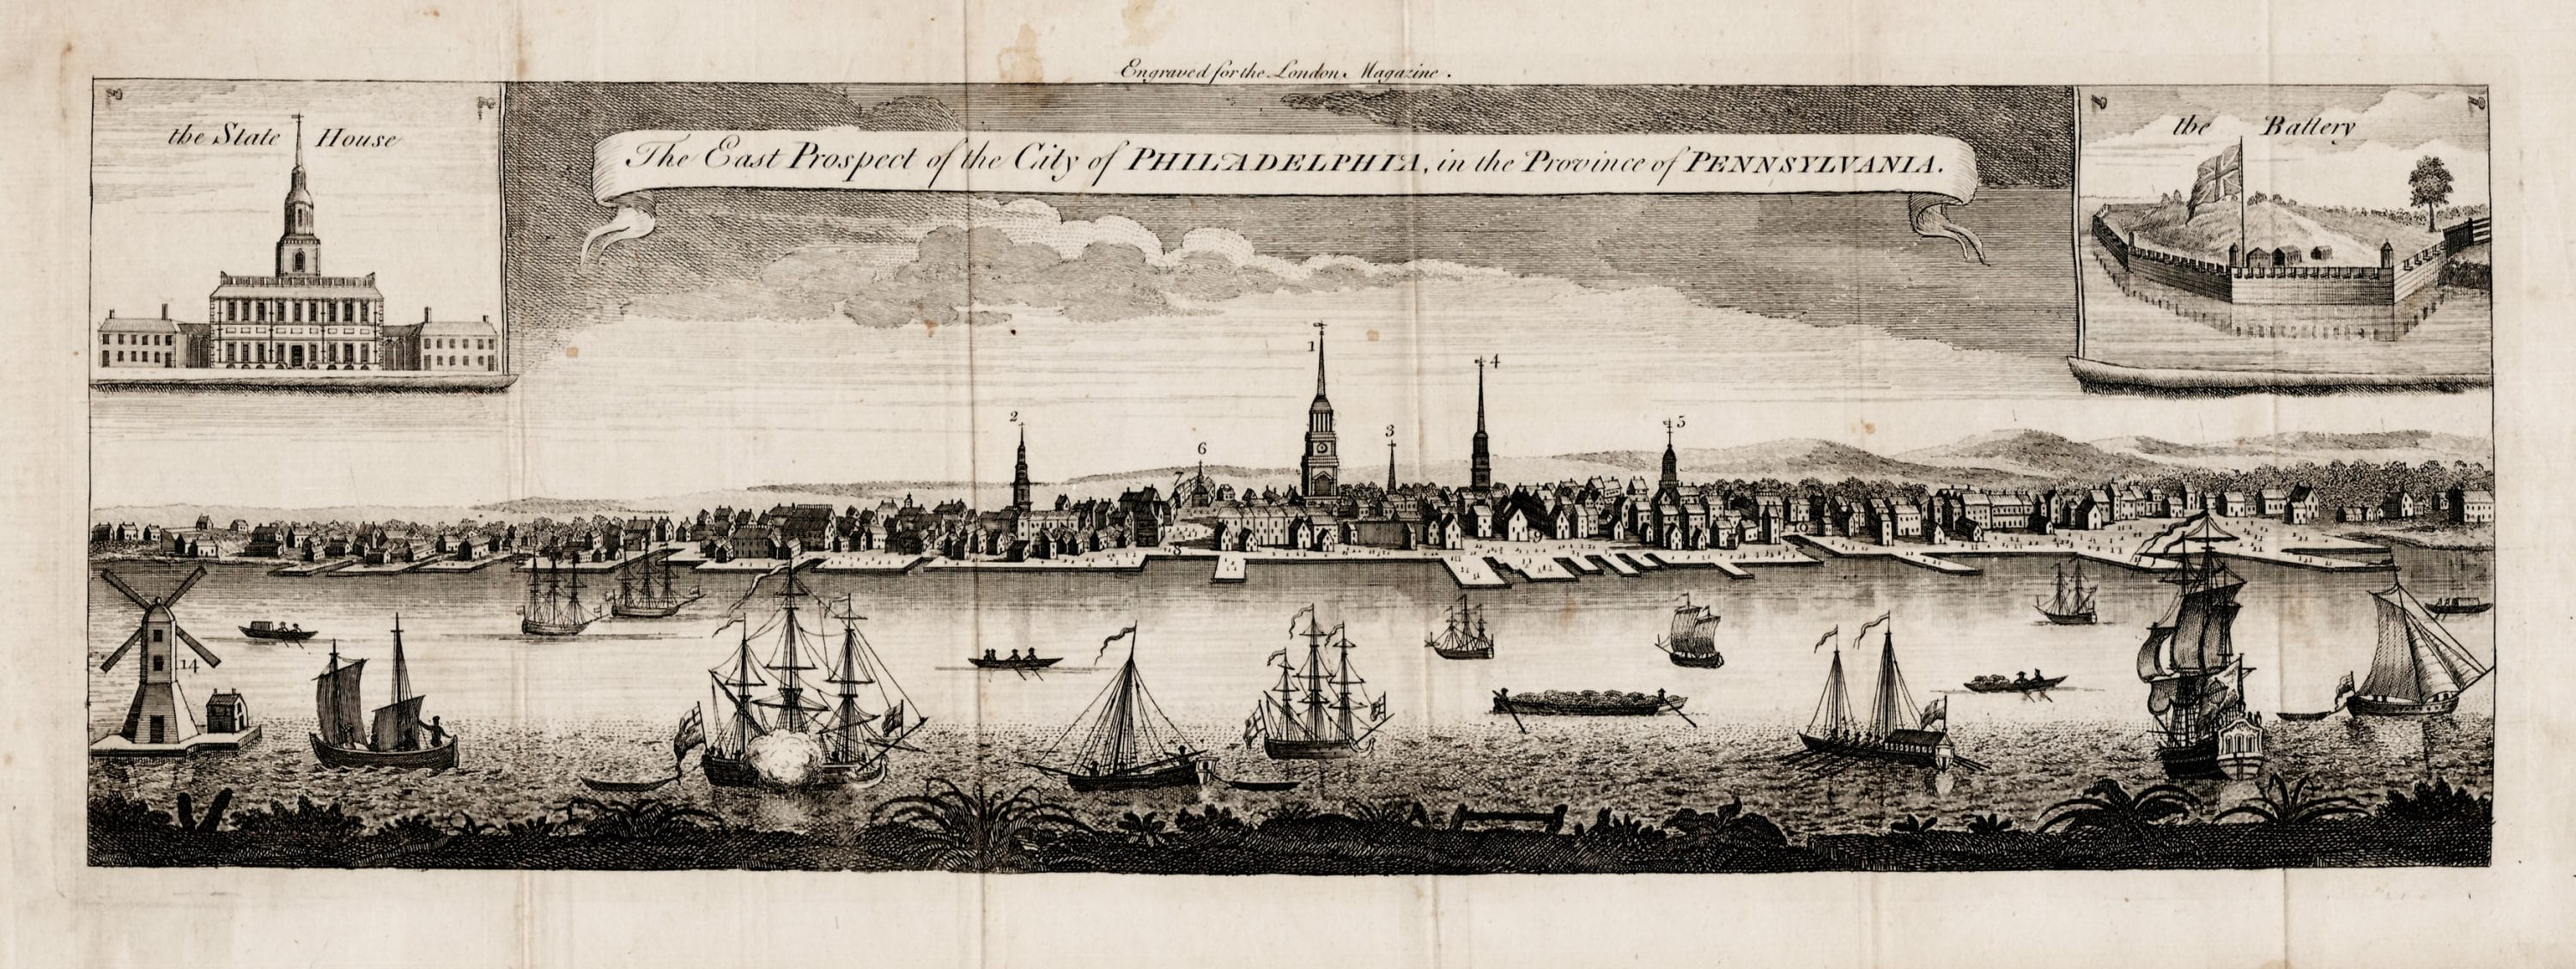 1761 view of Philadelphia based on the George Heap original